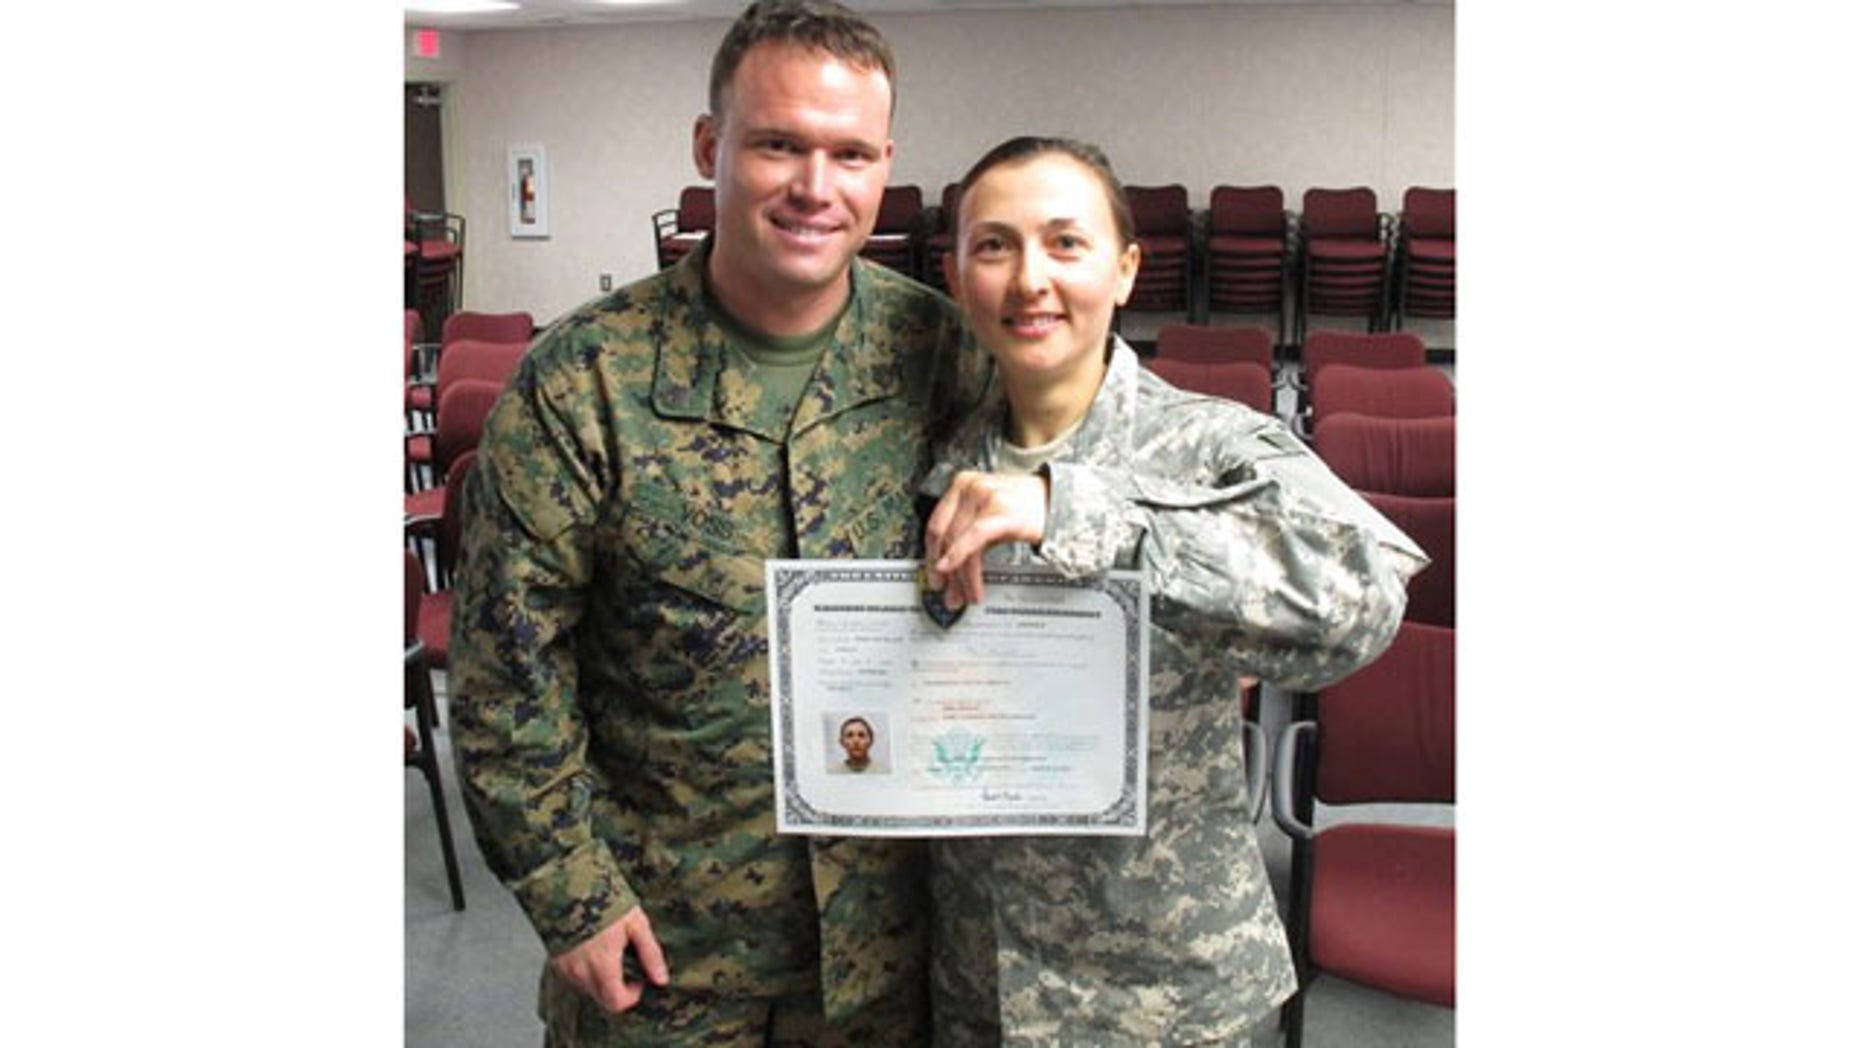 March 16: Army Spc. Rima Rusnac poses with her fiance, Staff Sgt. Ian Voss, after taking the oath to become a U.S. citizen, at Fort Jackson, S.C.